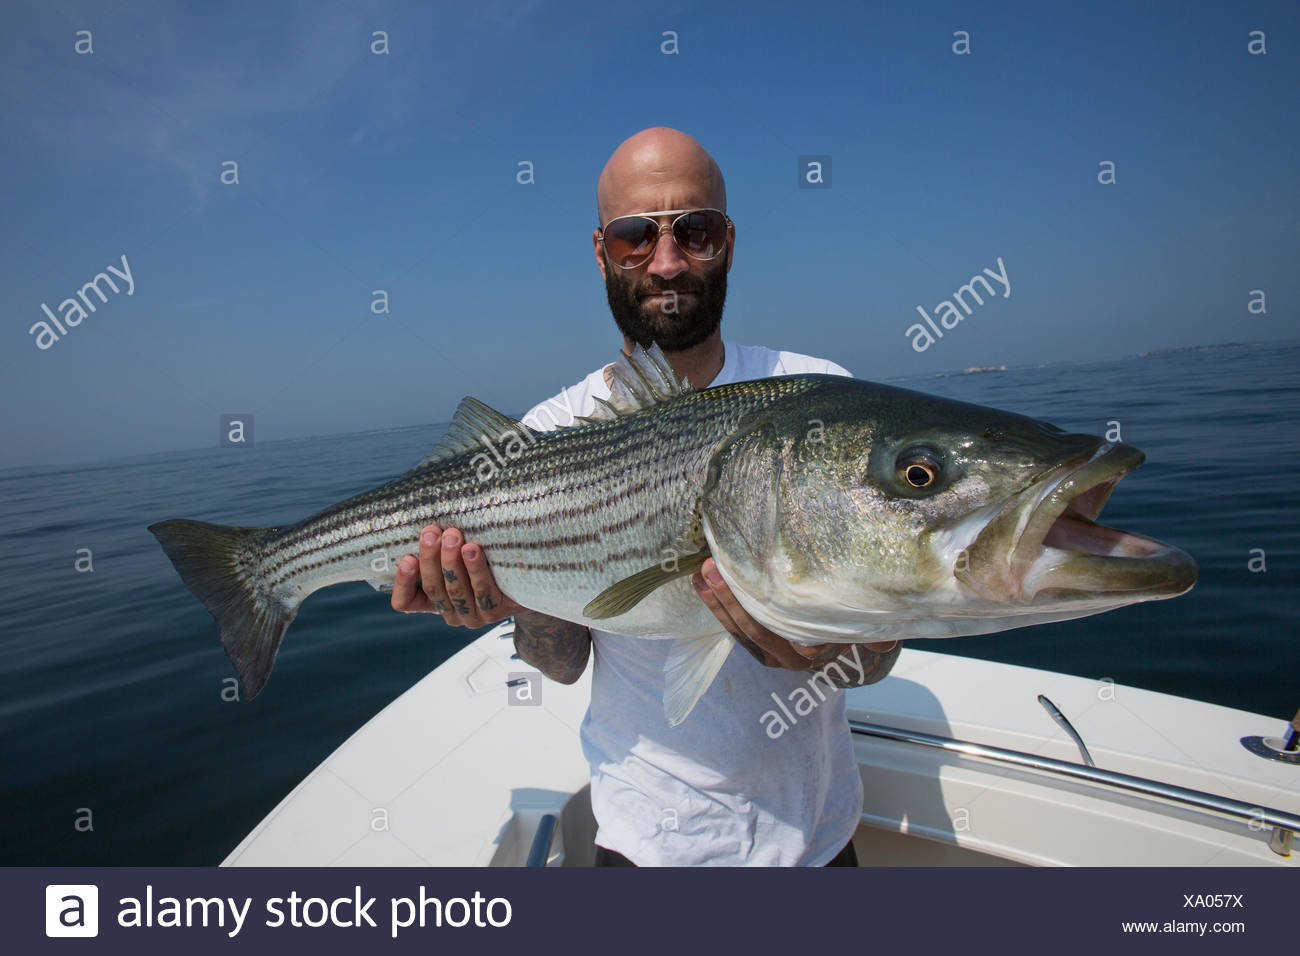 Atlantic Striped Bass Stock Photos & Atlantic Striped Bass Stock